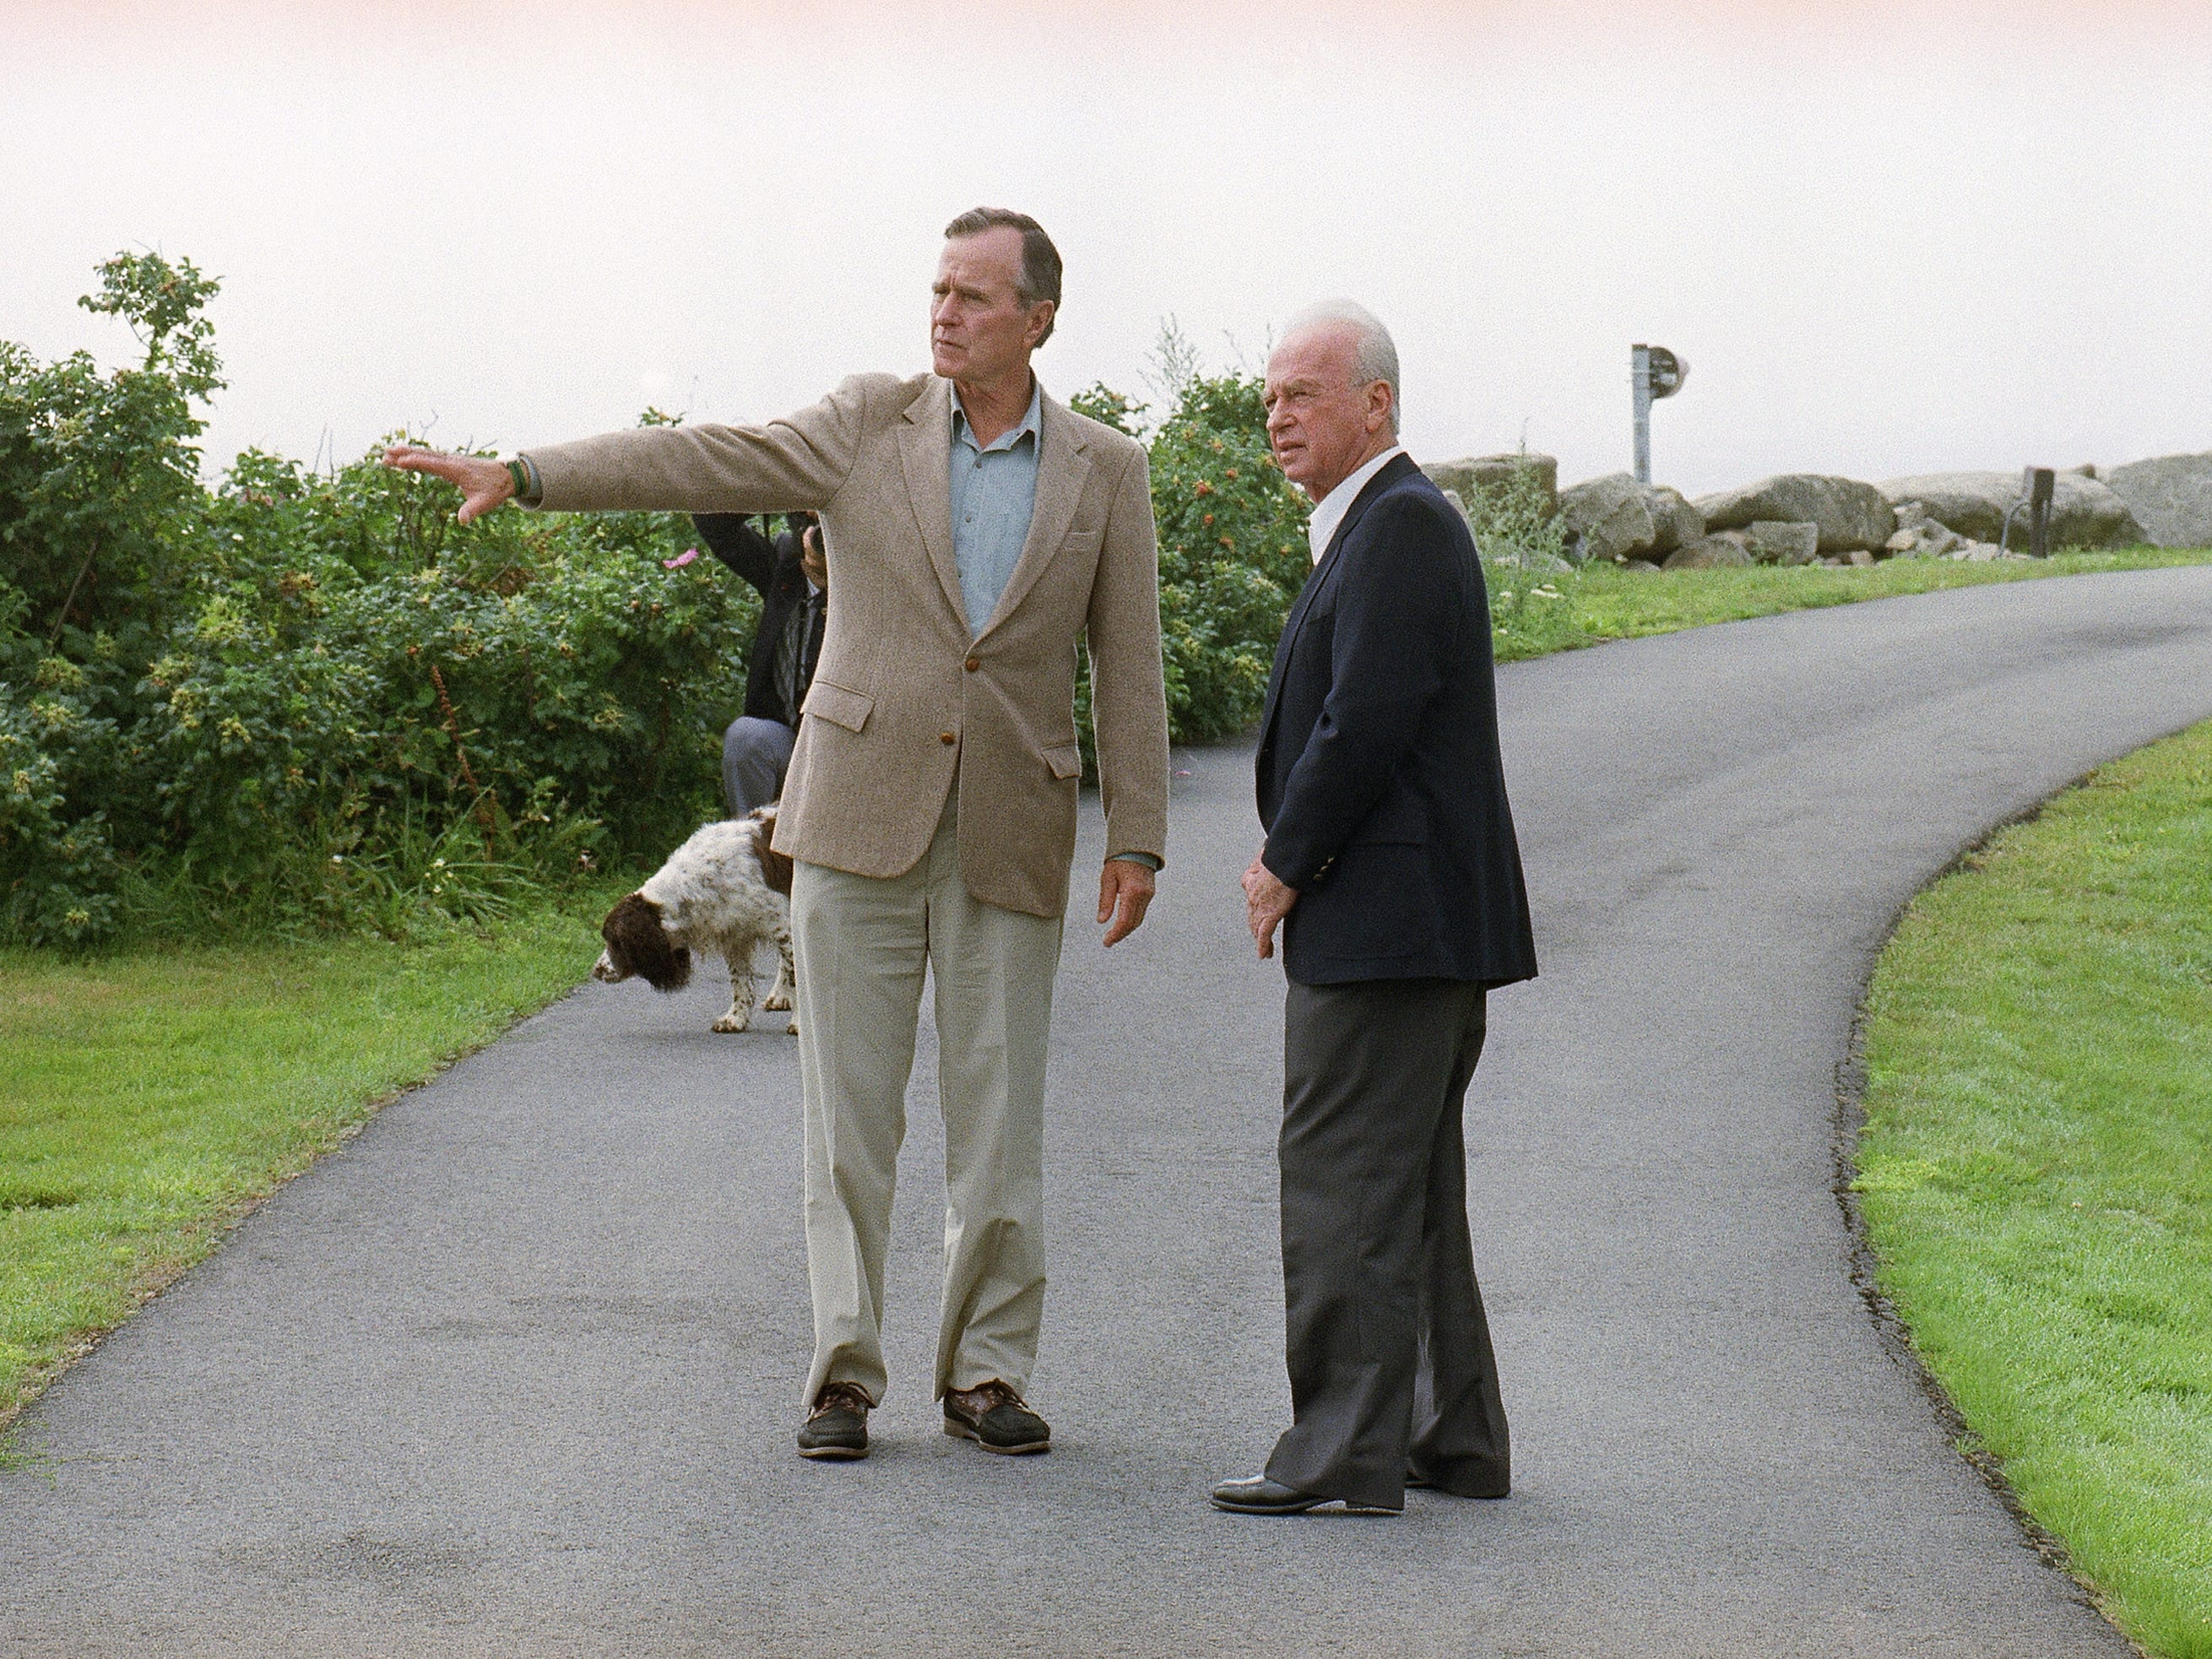 President George H W Bush, left, points something out to Prime Minister Yitzhak Rabin of Israel as they walk on the grounds on August 11, 1992 at Bush's vacation home in Kennebunkport, Maine. (AP Photo/Greg Gibson)